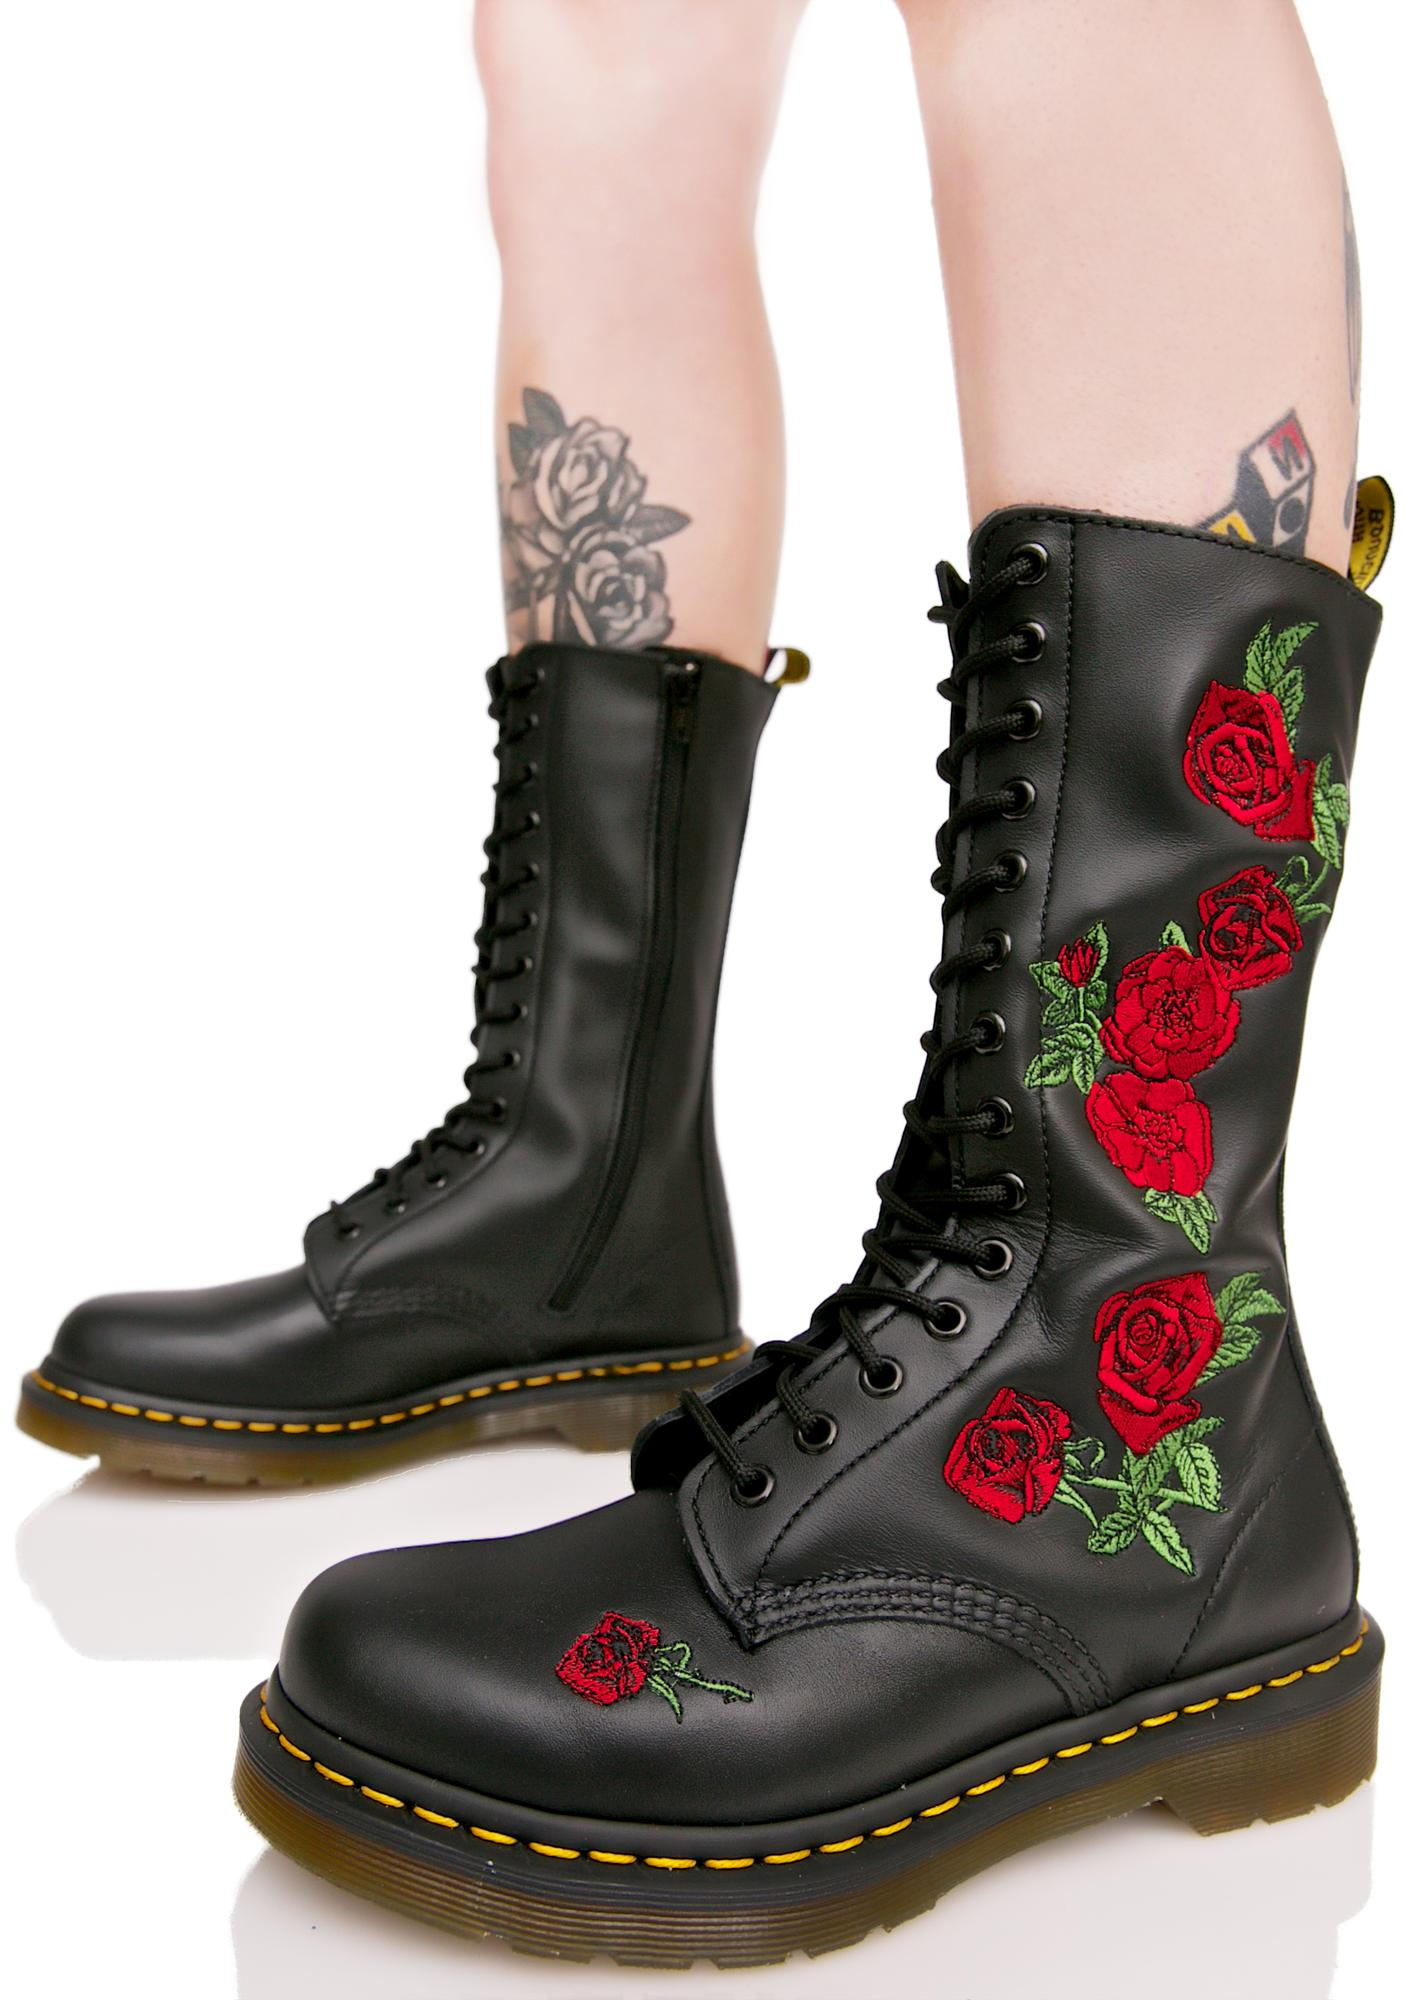 Dr. Martens Vonda Embroidered 14 Eye Boots  fdd83f00b654